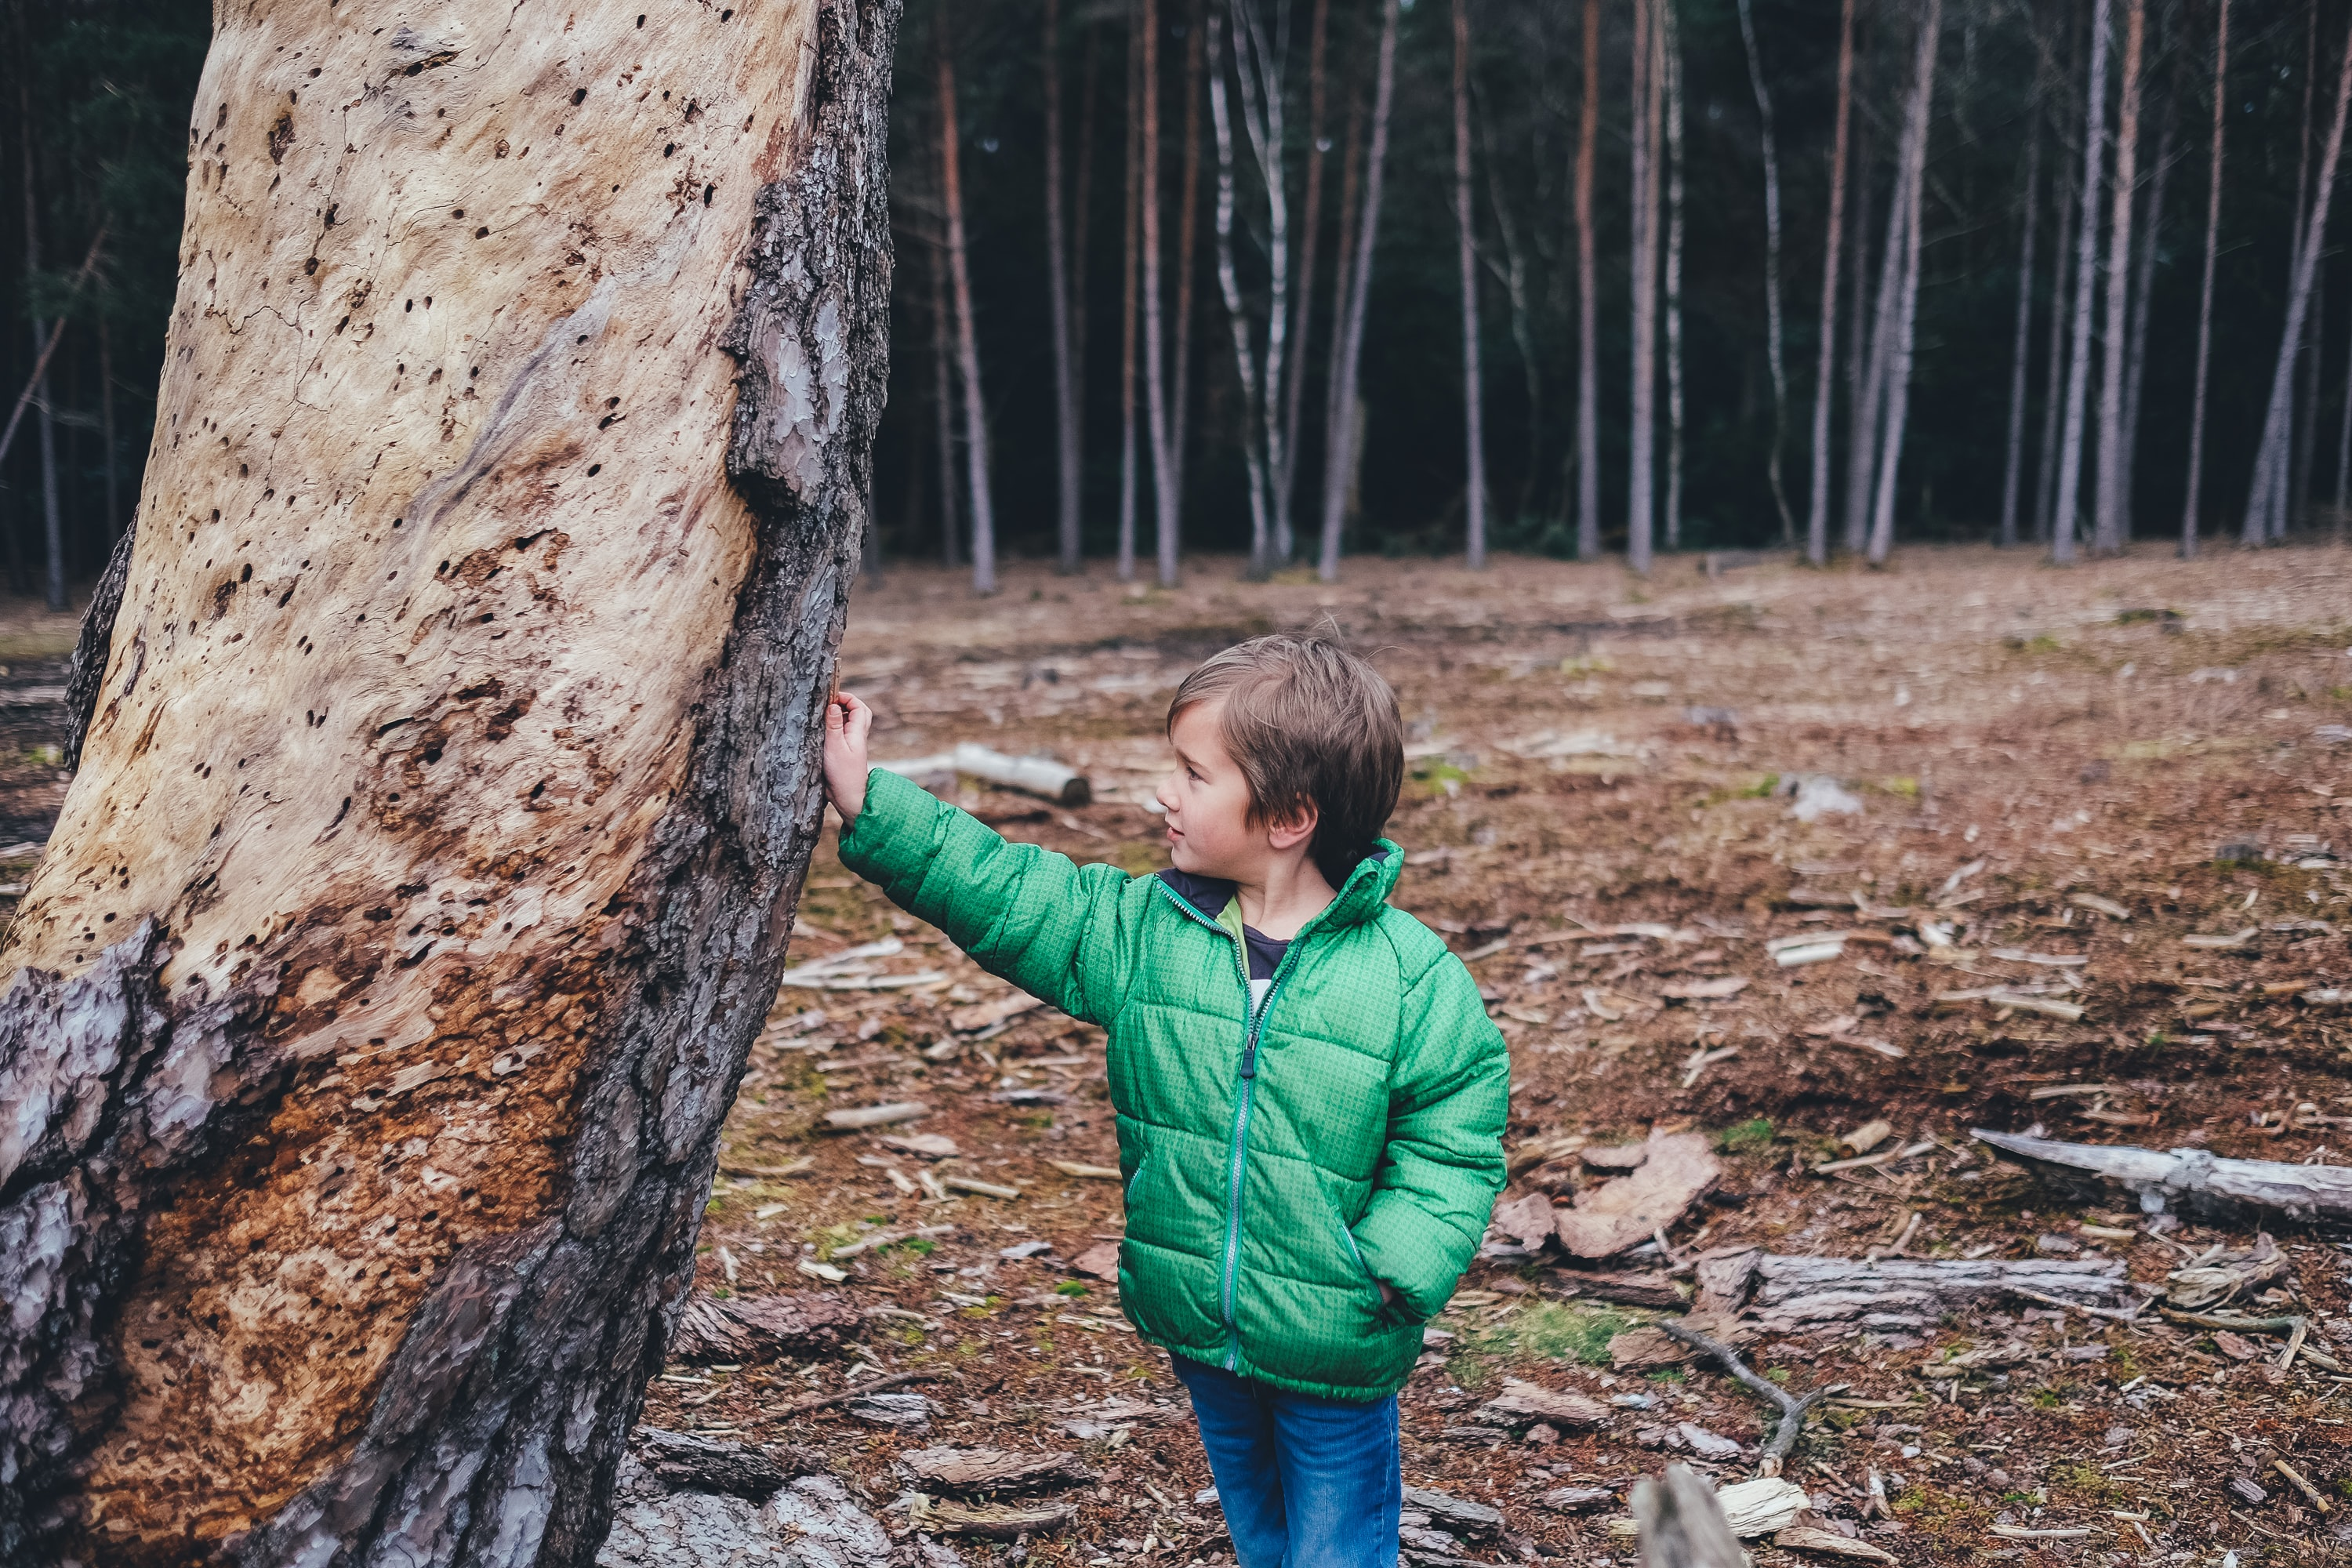 A small boy in a jacket leaning against a tree in a forest